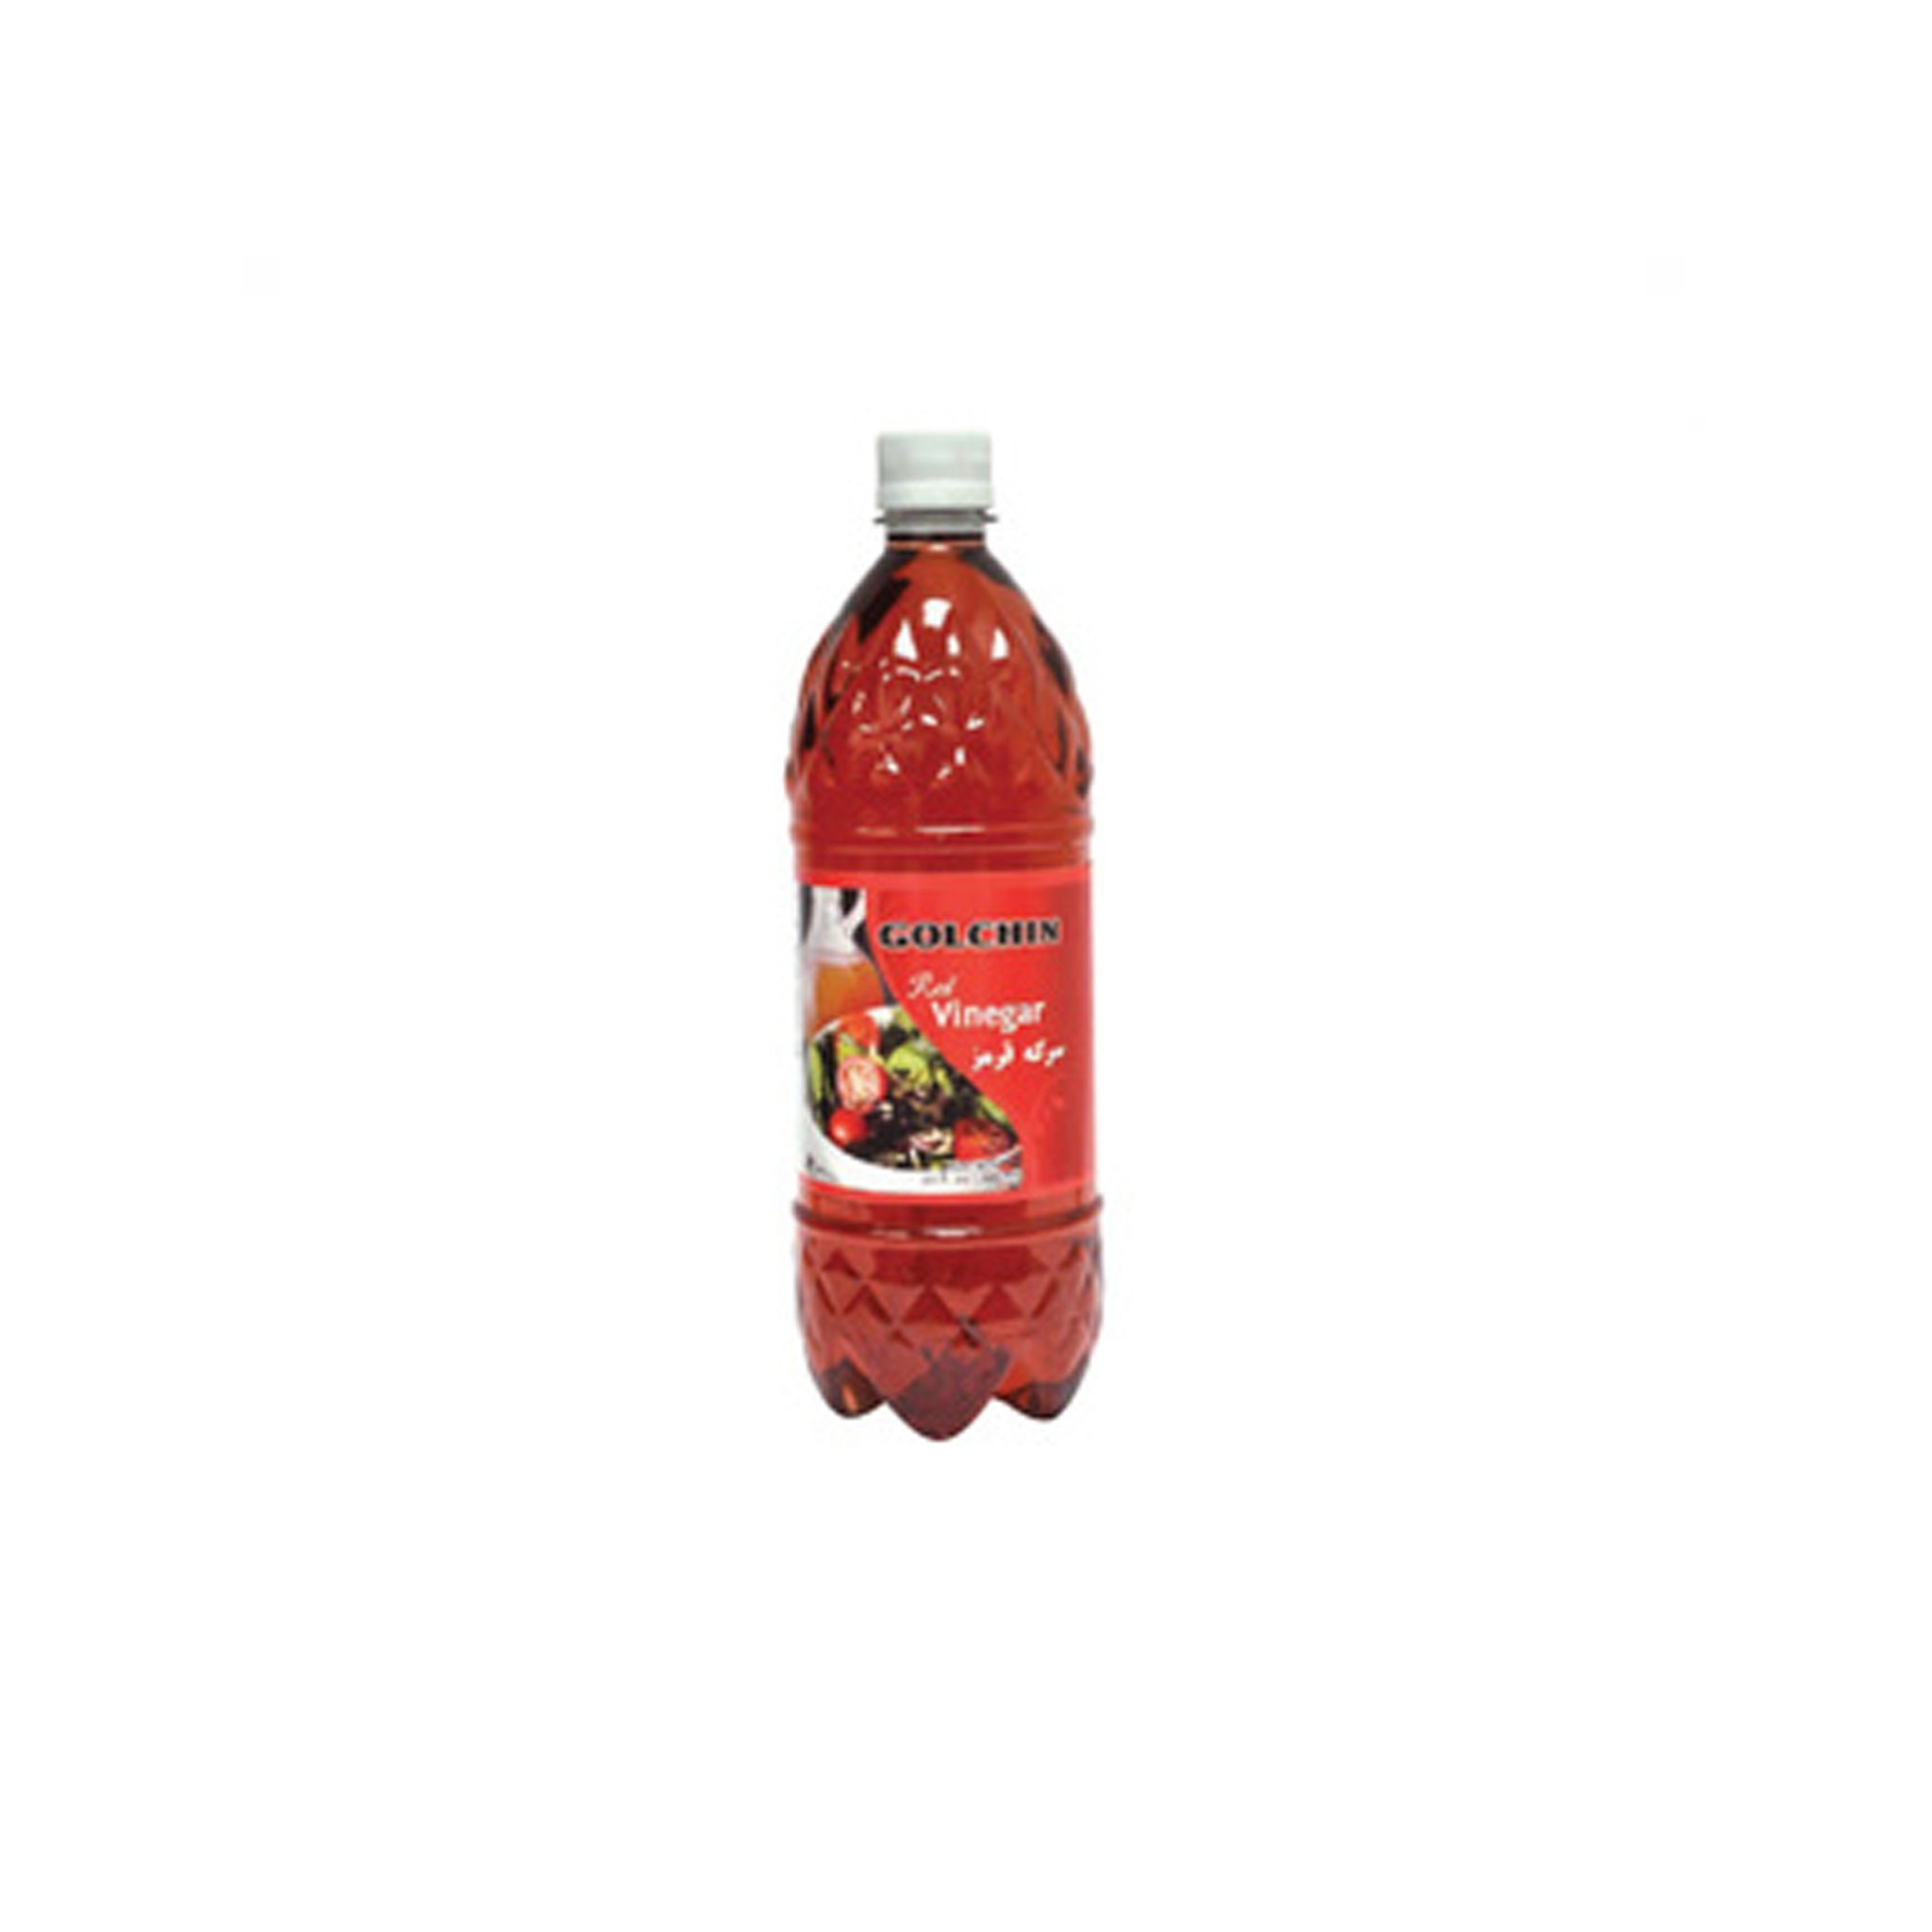 Golchin Red Vinegar 1L